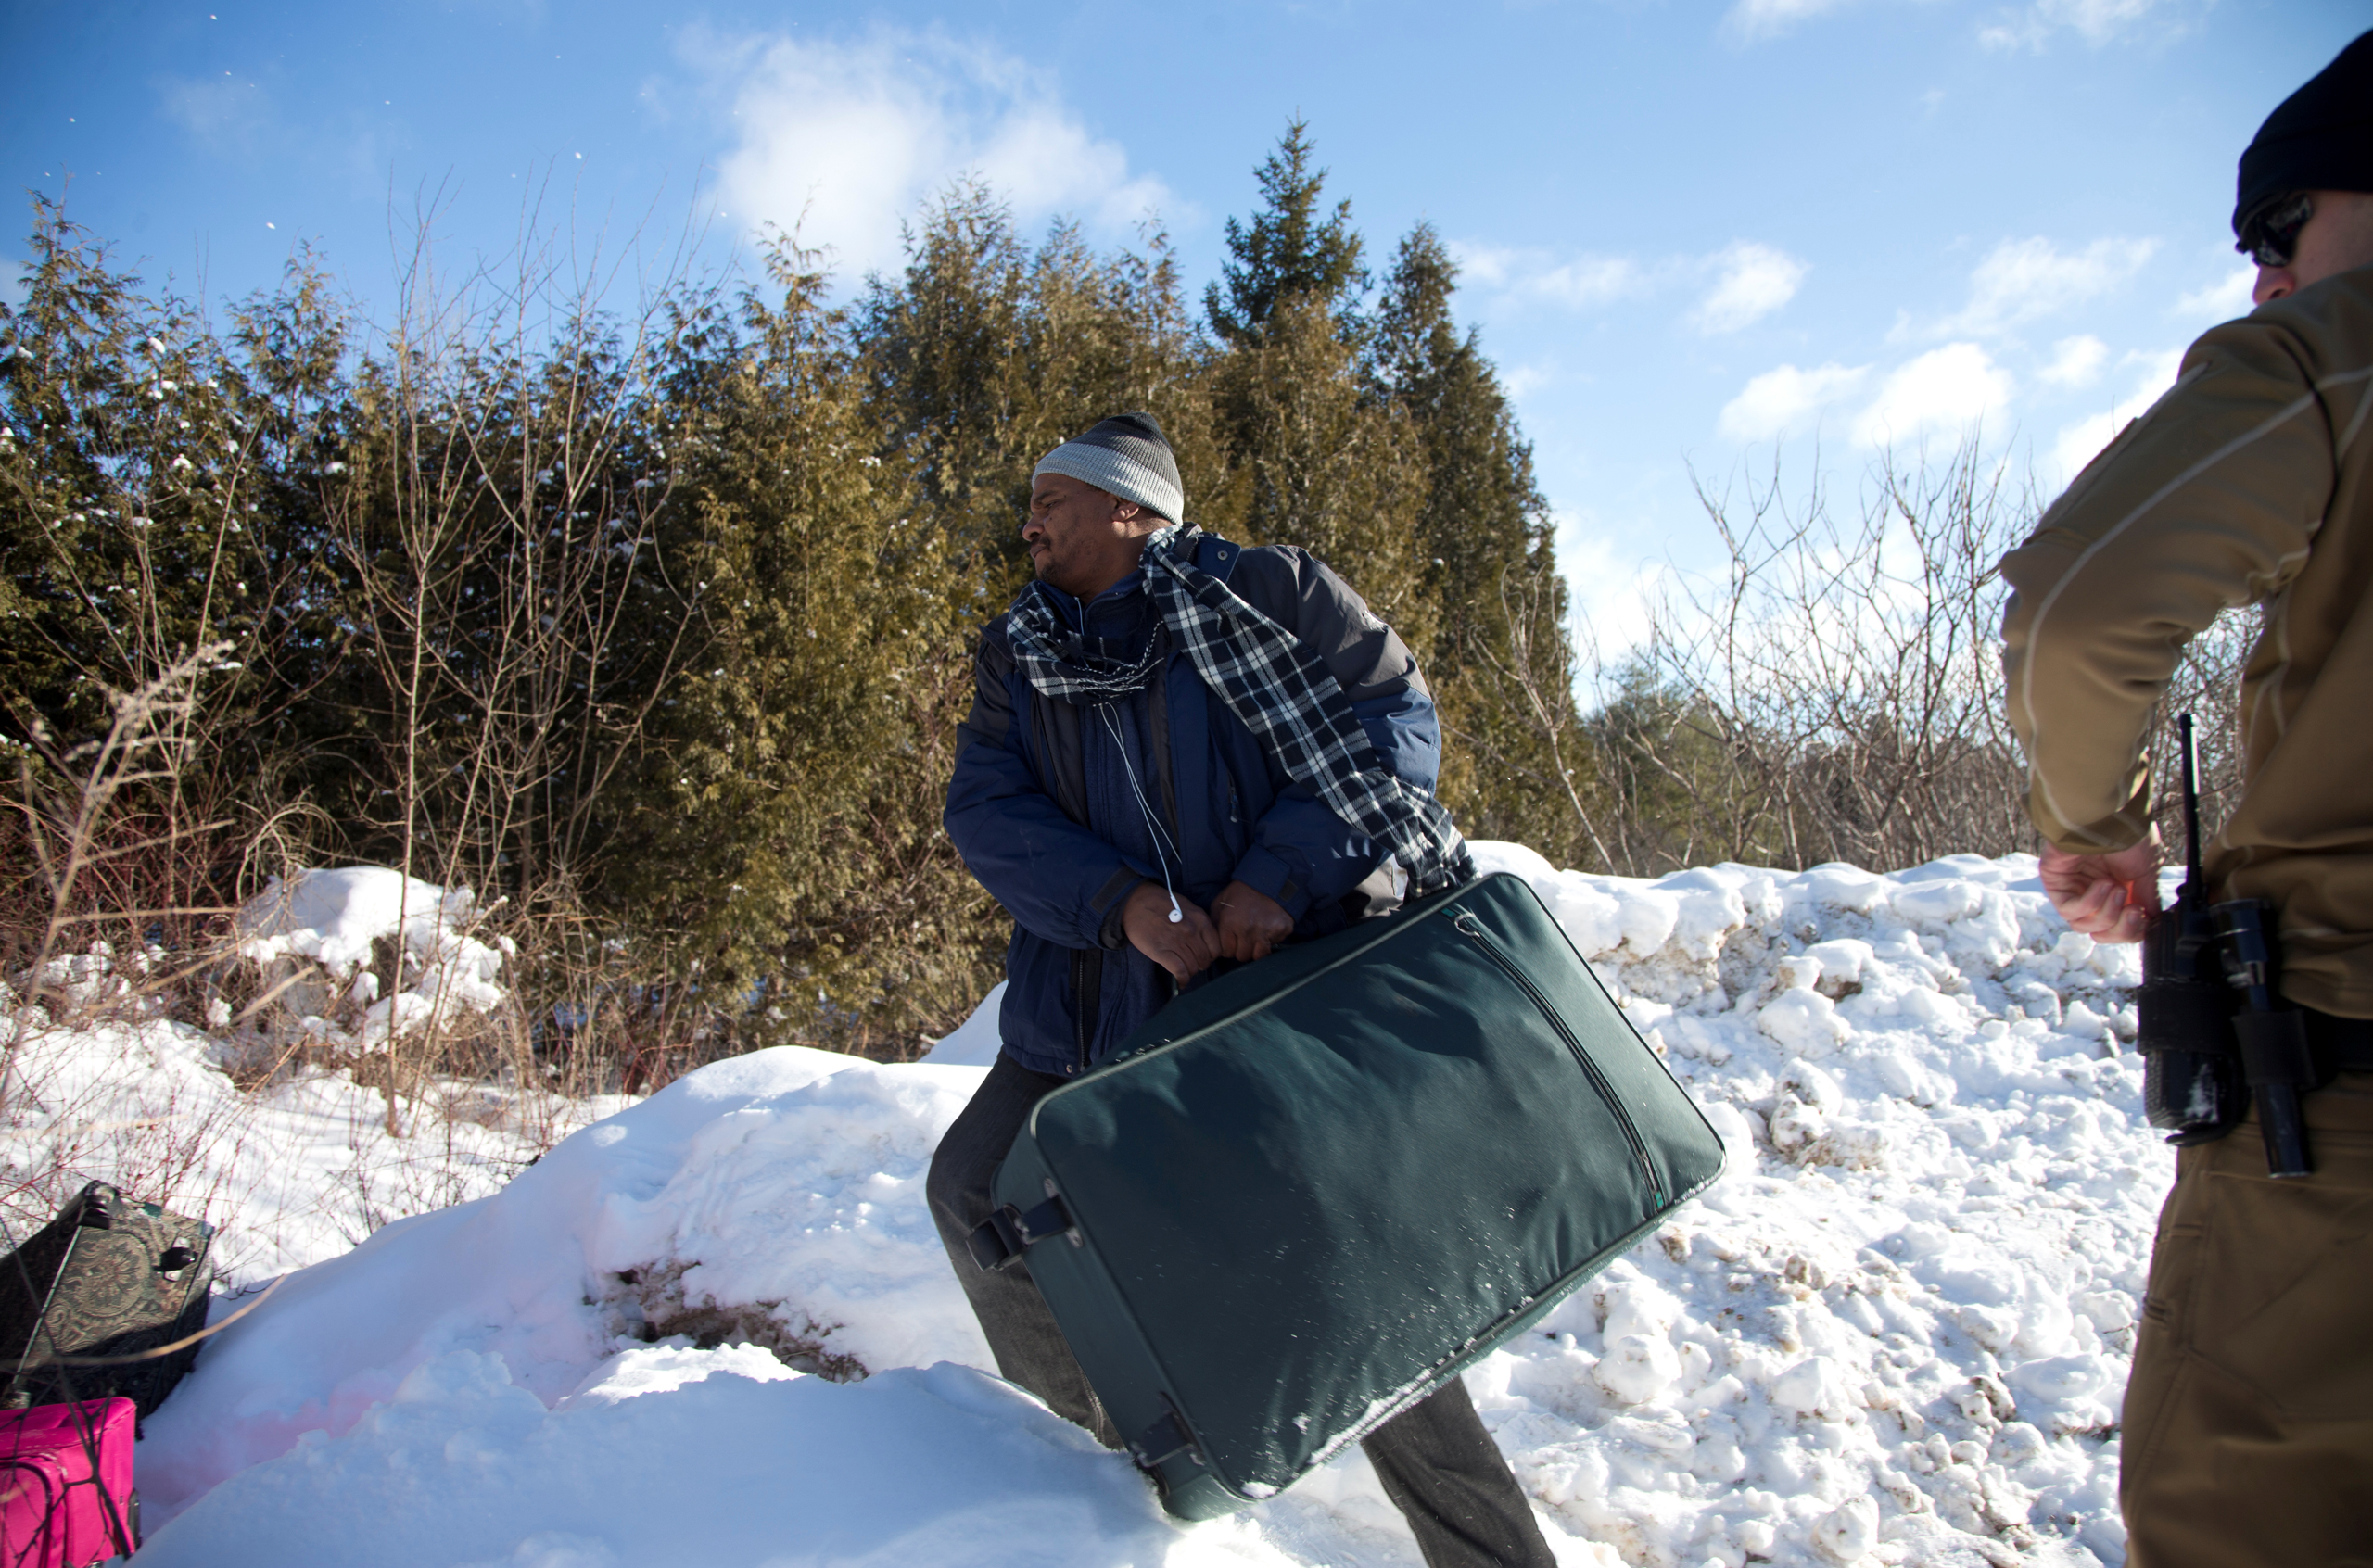 A man who claimed to be from Sudan throws his family's suitcases towards the border as he is detained by a U.S. border patrol officer after his family crossed the U.S.-Canada border into Hemmingford, Canada, from Champlain, N.Y., on Feb. 17, 2017.